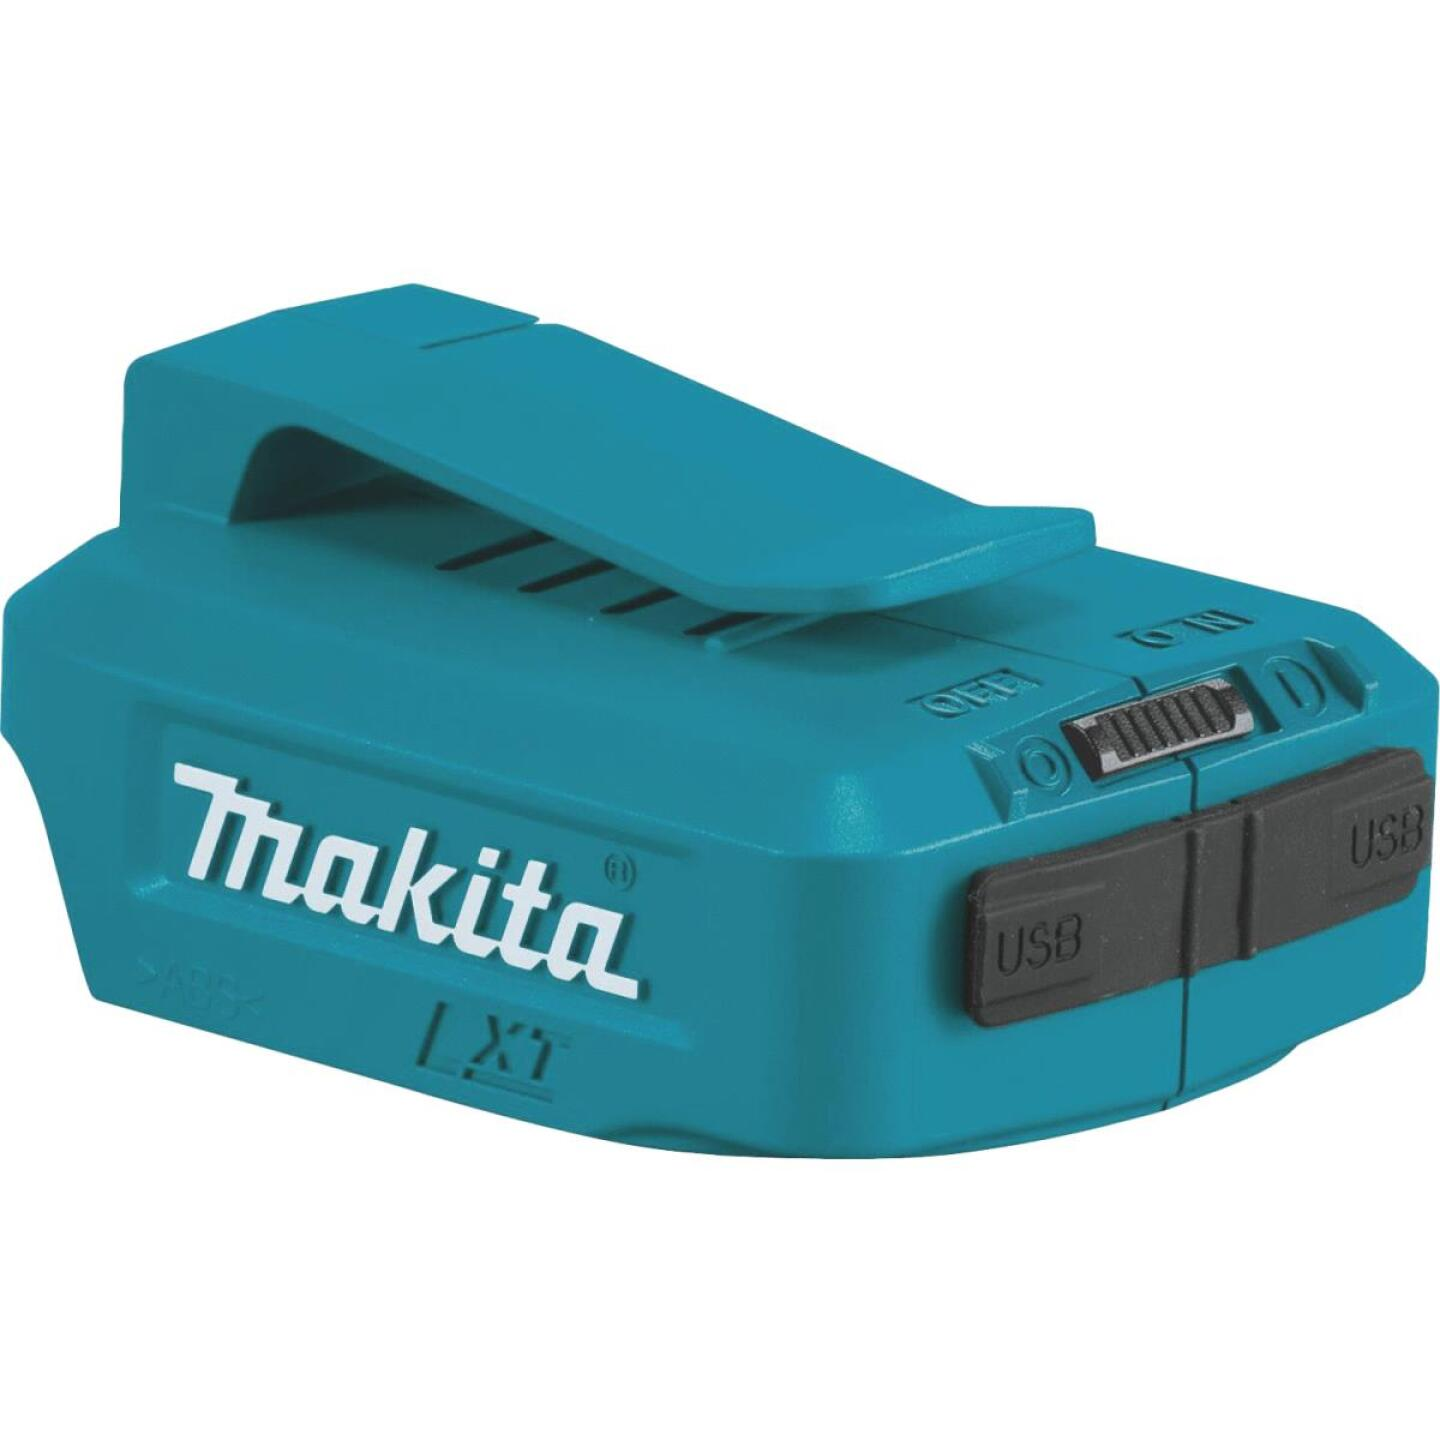 Makita 18 Volt LXT Lithium-Ion Cordless Power Source (Bare Tool) Image 1